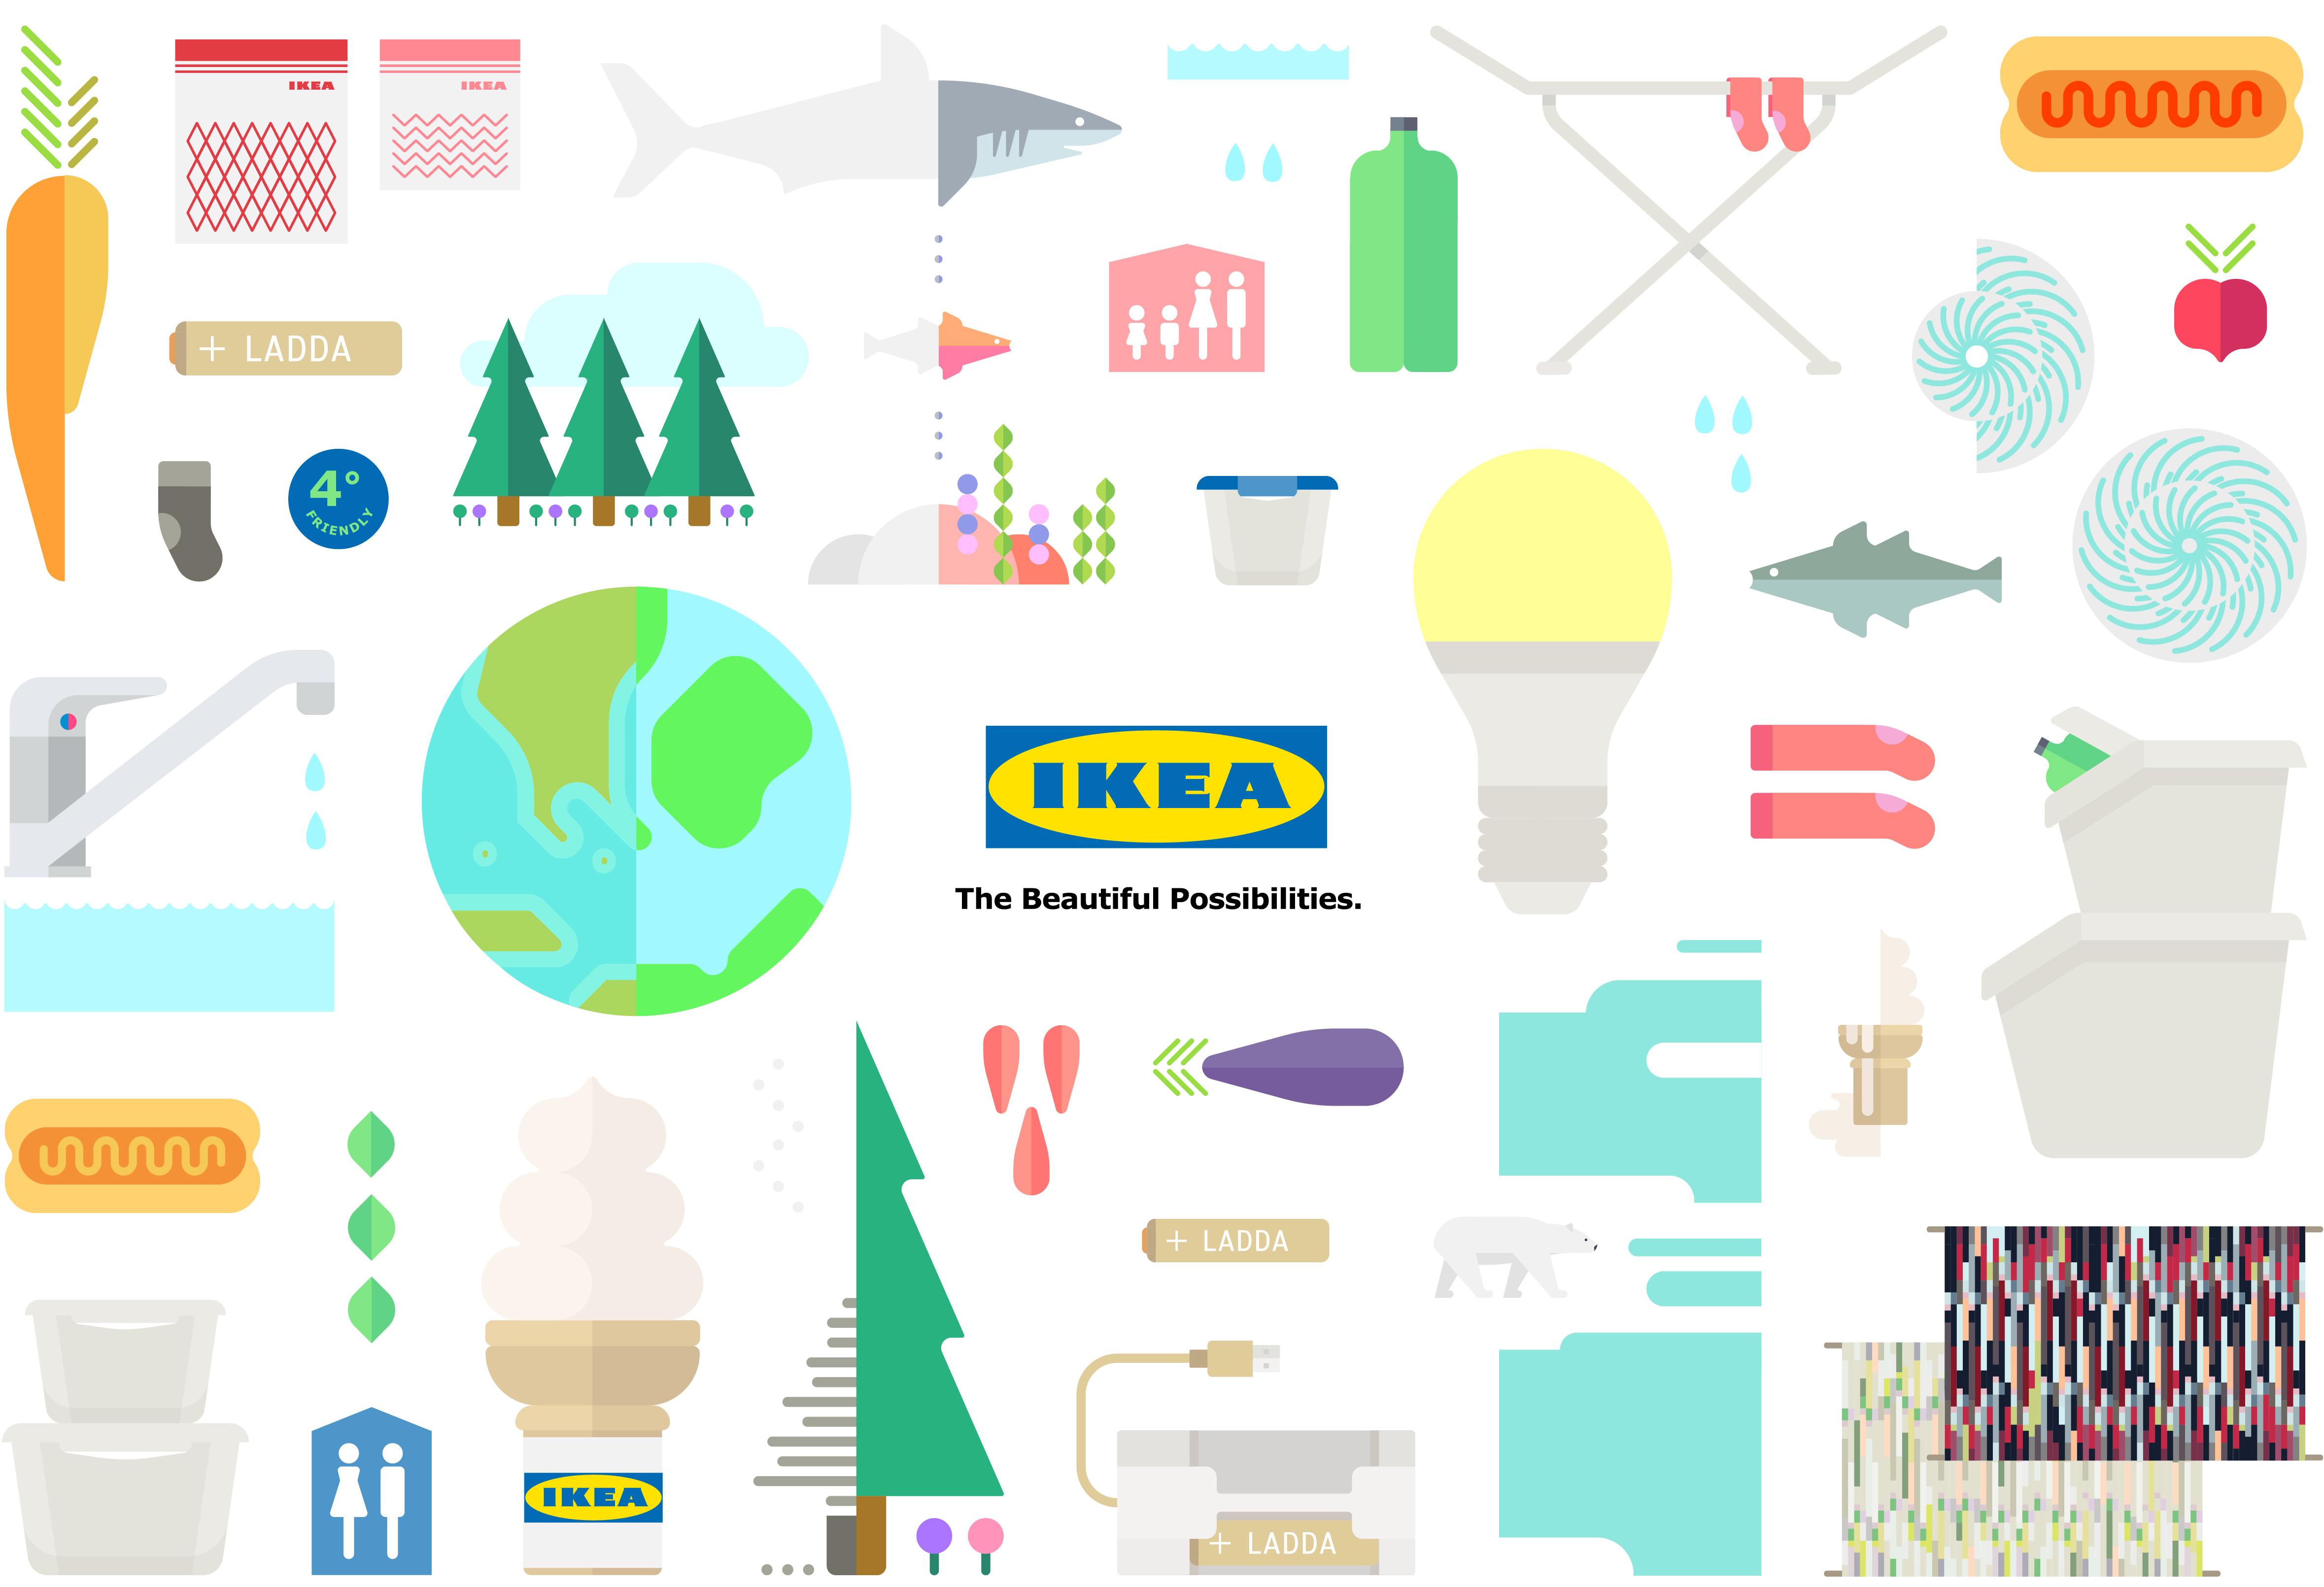 IKEA-4Degrees-IllustrationalsAll-02 copy